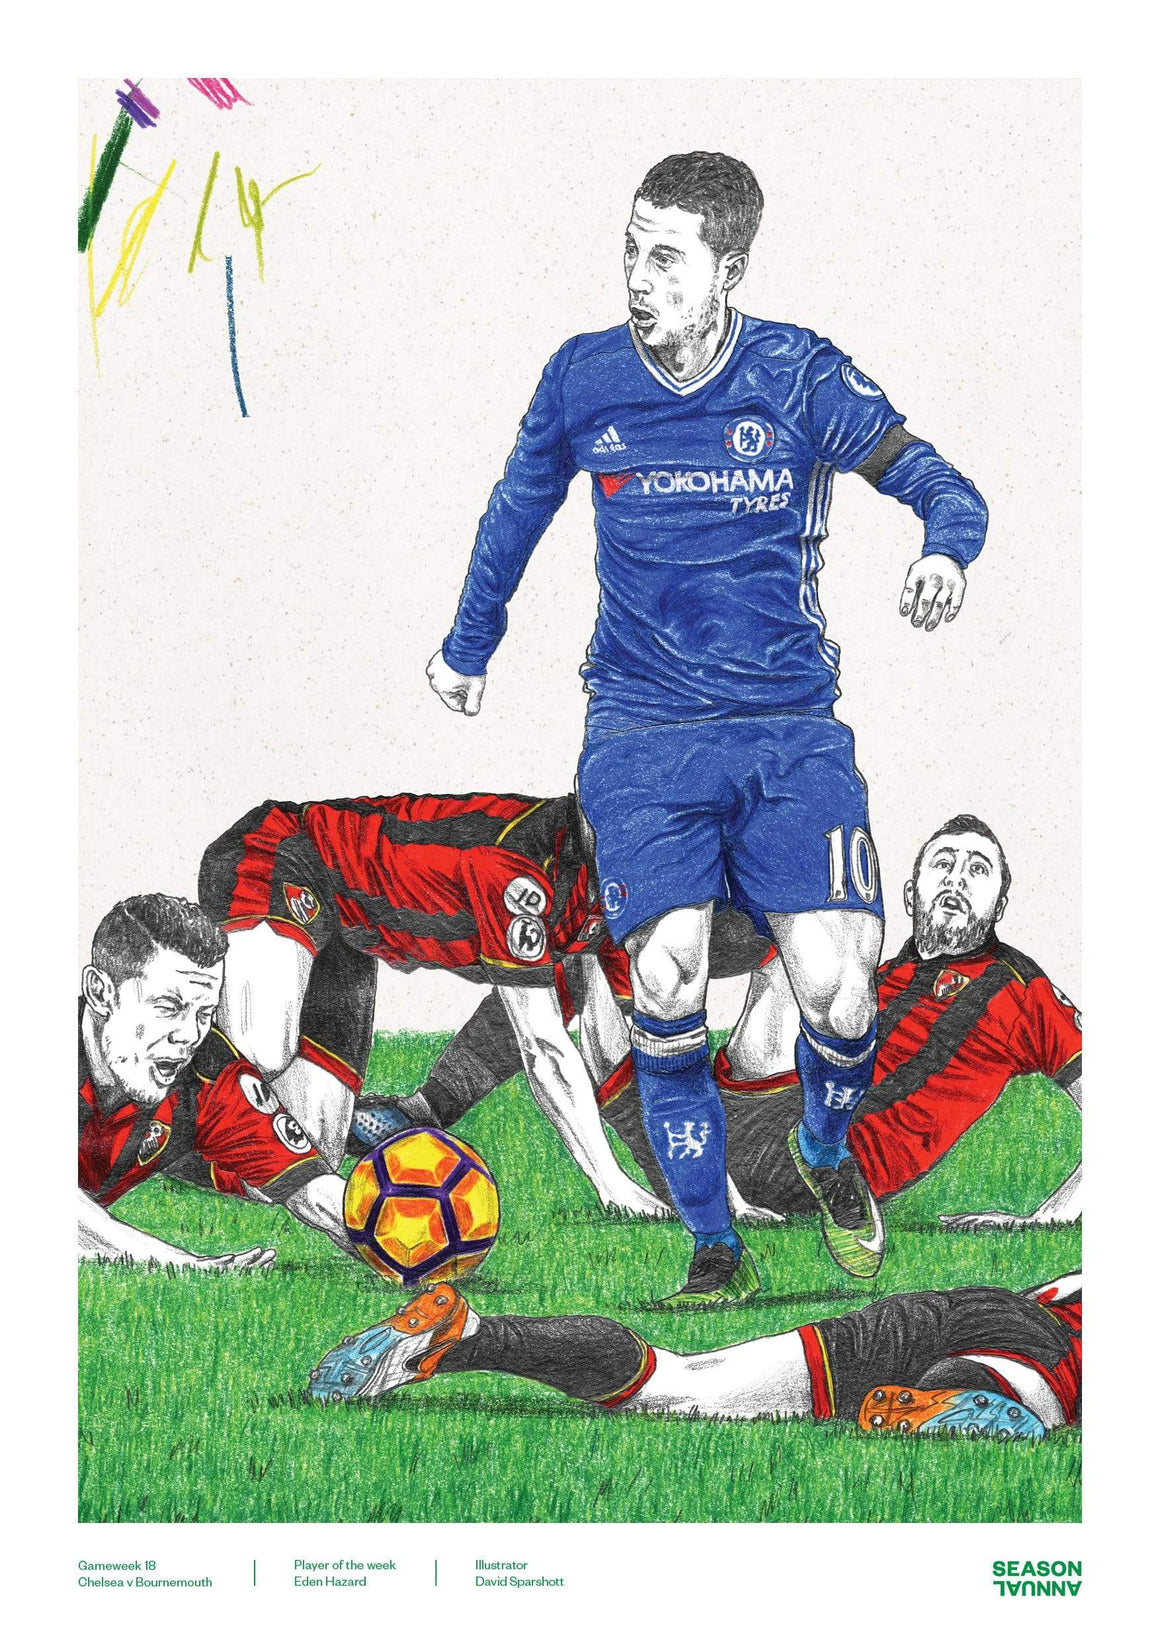 Season Annual A3 poster of Eden Hazard running the show for Chelsea v Bournemouth